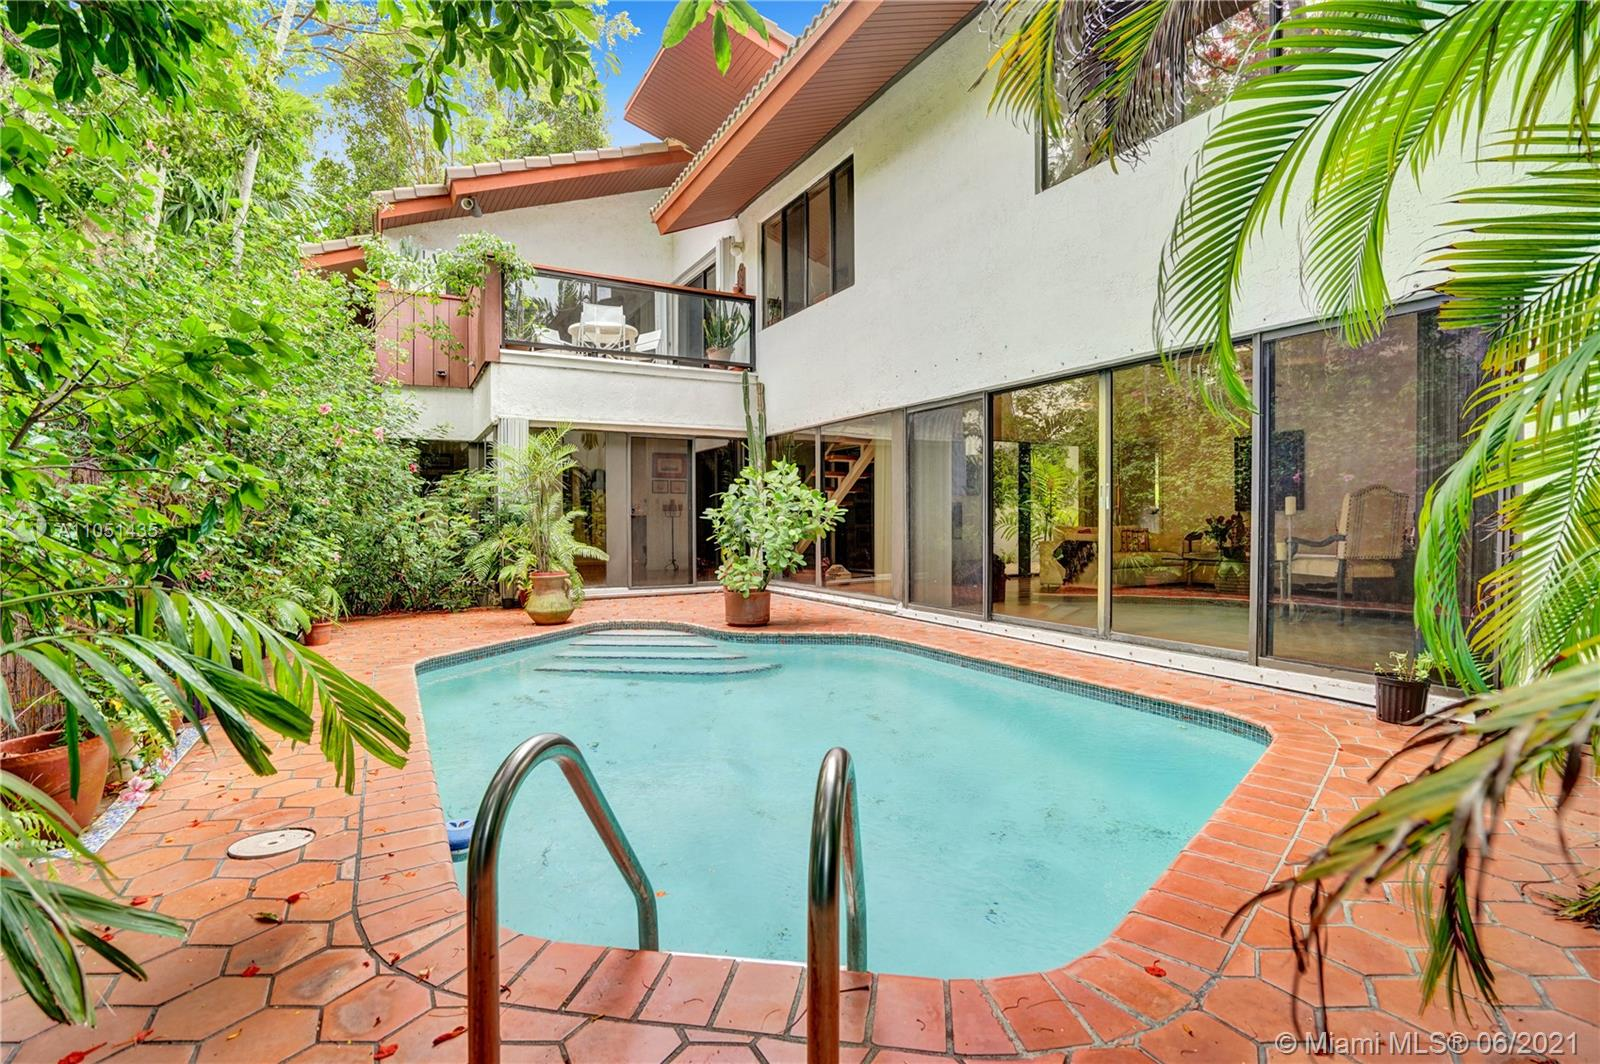 Unique opportunity to live in one of Miami's most prestigious streets, Historic South Miami Avenue! Very private home located in the secluded gated community of Brickell Forest with only 7 homes. This property features 4 bedrooms plus den and 5 bathrooms and two car garage. Tropical pool/patio area with lush landscaping, that gives a relaxed and Zen atmosphere. Brand new roof, 2021 and newer beautiful wooden floors in the bedrooms. Conveniently located with easy access to I-95, minutes away from the Airport, Coconut Grove, Coral Gables, Downtown Miami, the beach and nice stroll to the Financial Brickell area and its famous restaurants and shops. An oasis close to everywhere!